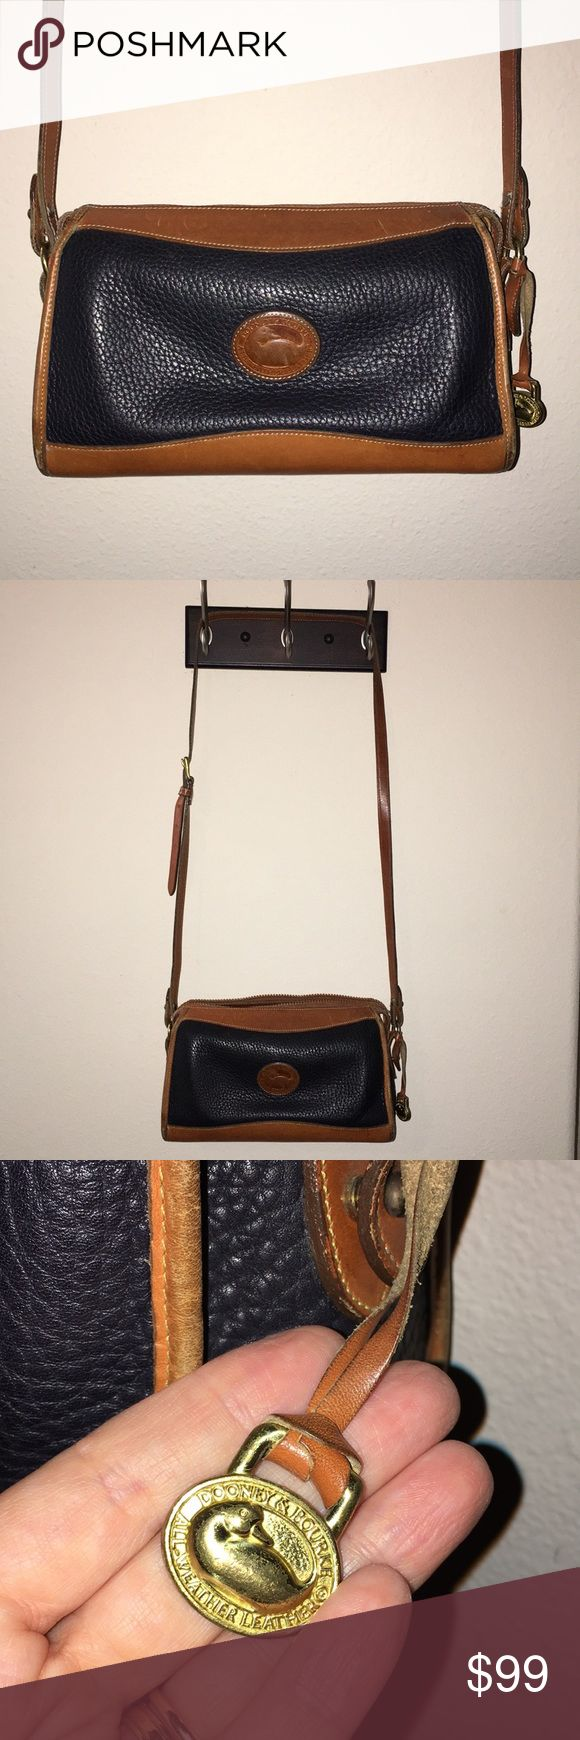 """Vintage DOONEY & BOURKE Tan Navy Crossbody Bag This is a Vintage DOONEY & BOURKE Tan and Navy Shoulder Bag Purse with original hangtag charm fob included! Measures about 11""""x6"""", good used condition!  I ship fast! Happy poshing friends! Dooney & Bourke Bags Crossbody Bags"""